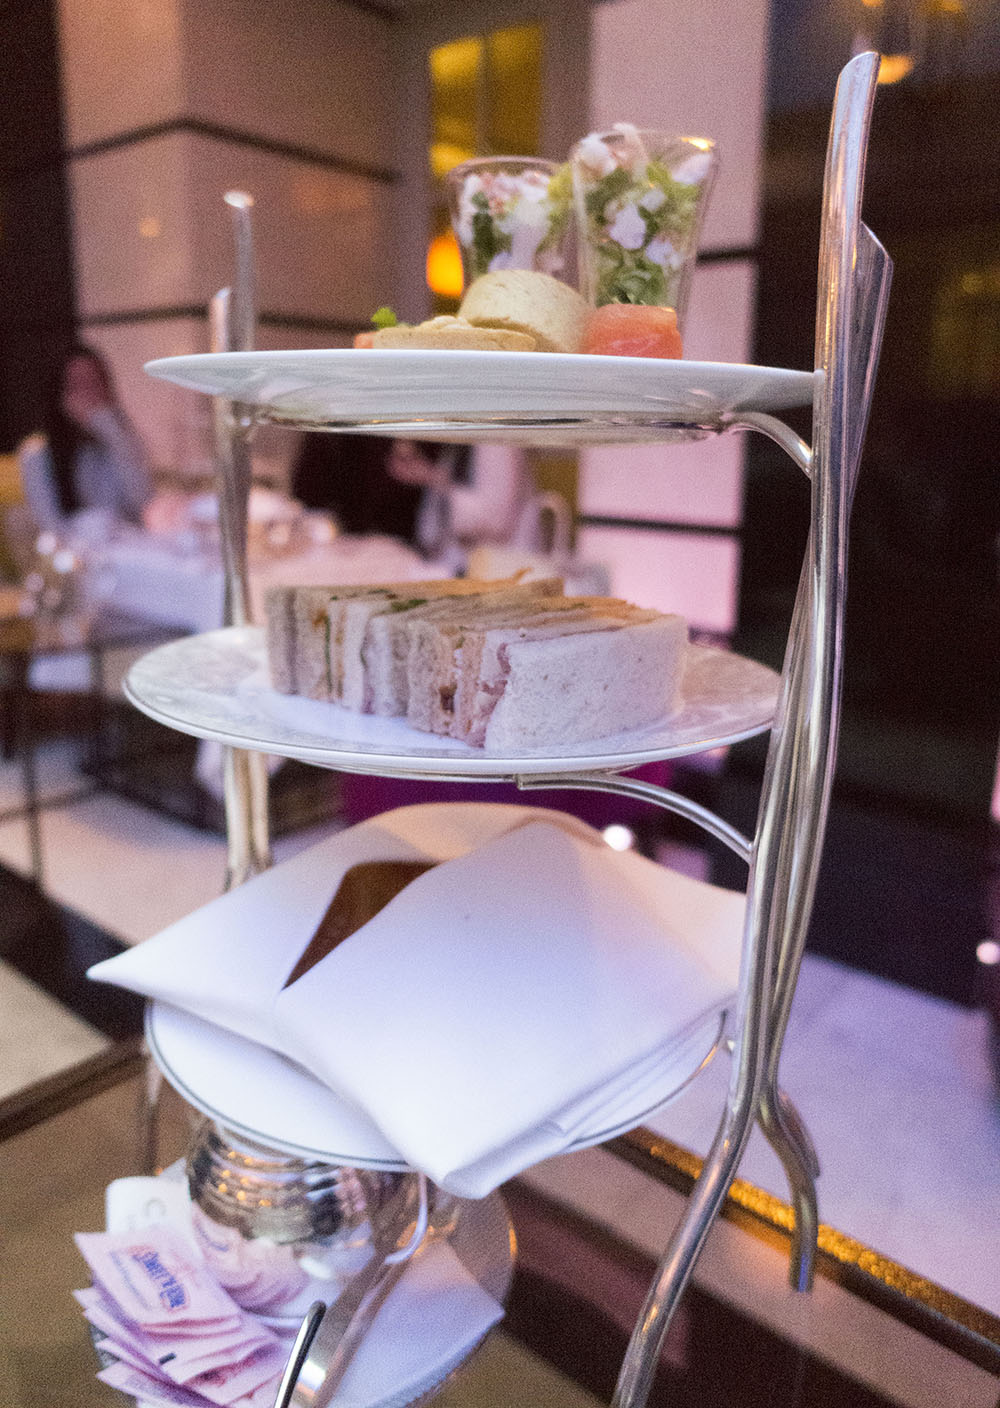 Snow Queen Afternoon Tea at the Conrad St James Hotel | London